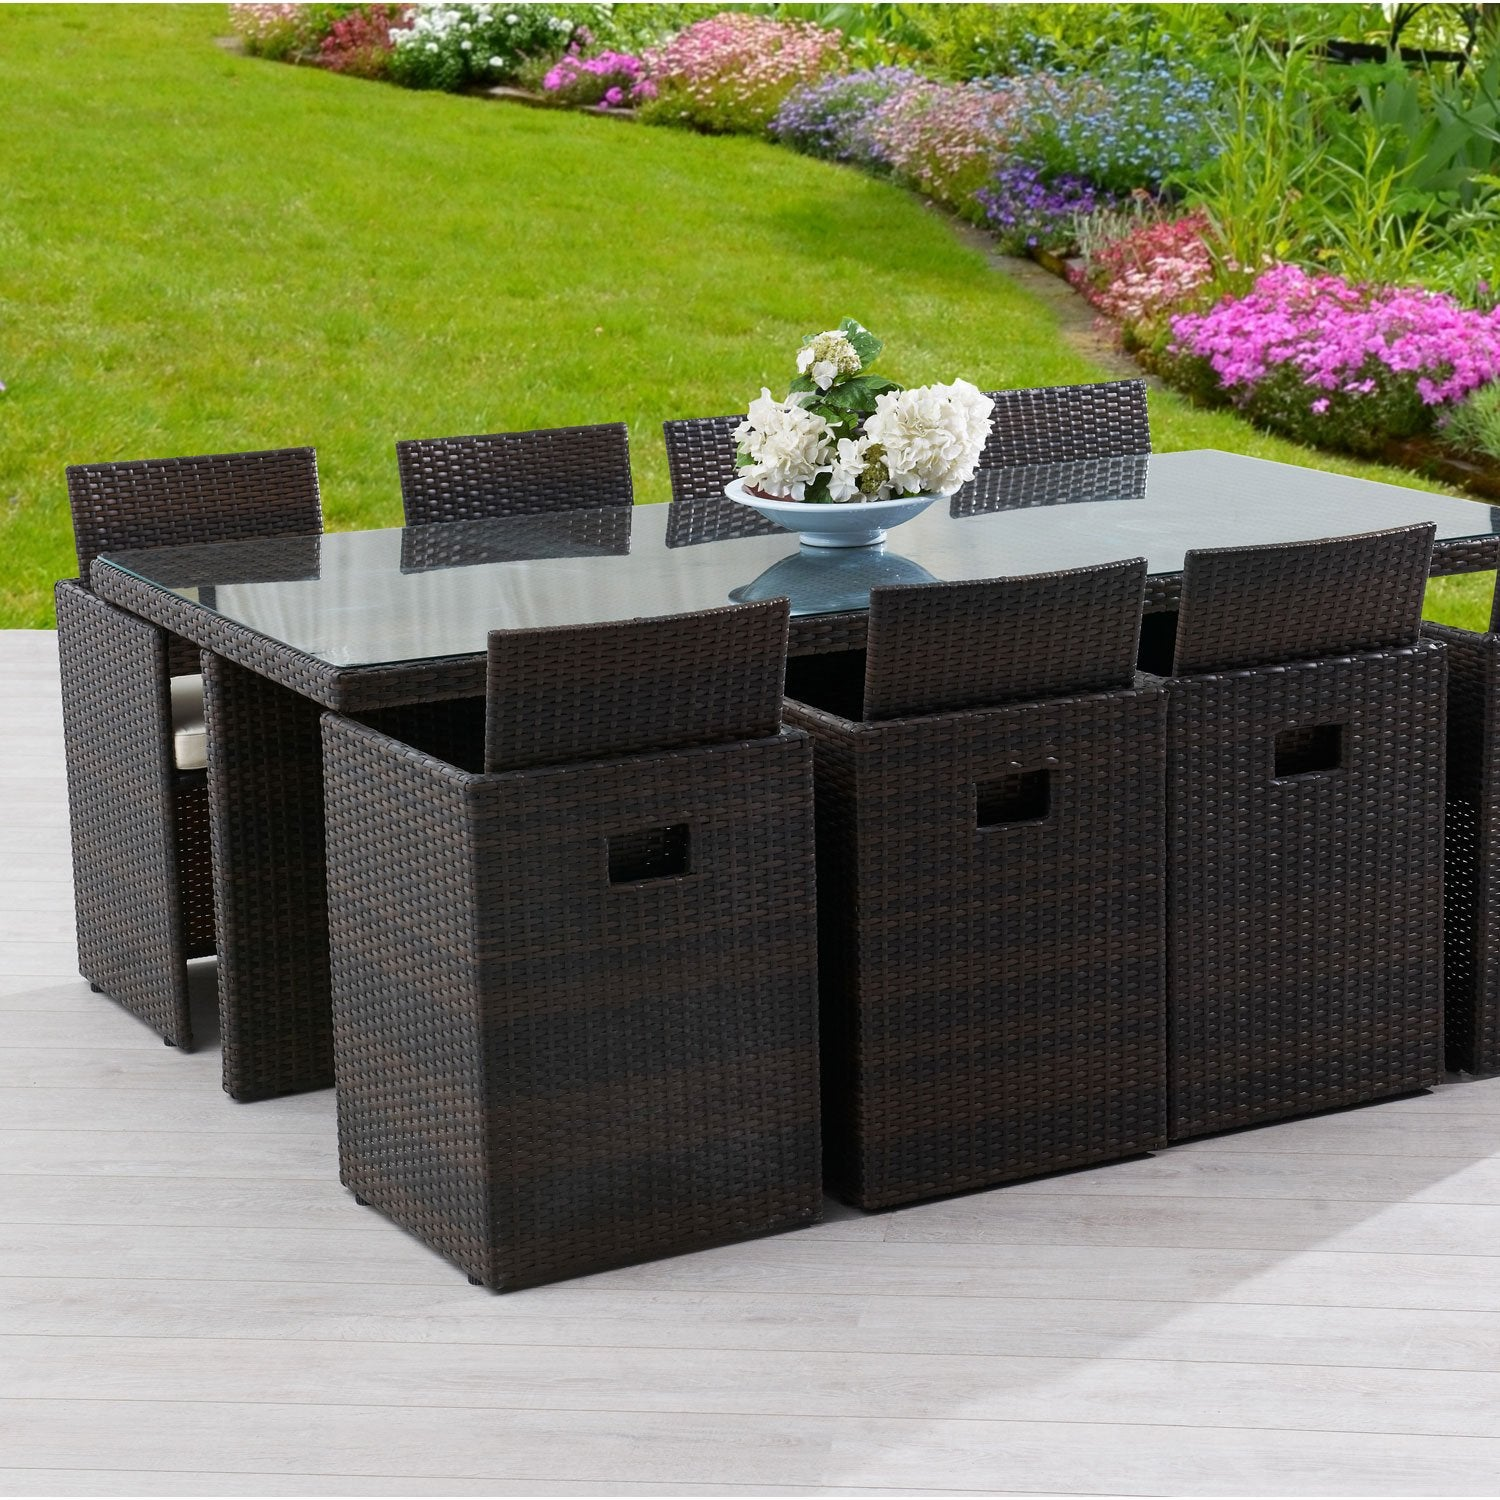 Salon de jardin encastrable r sine tress e marron 1 table for Mobilier rotin exterieur